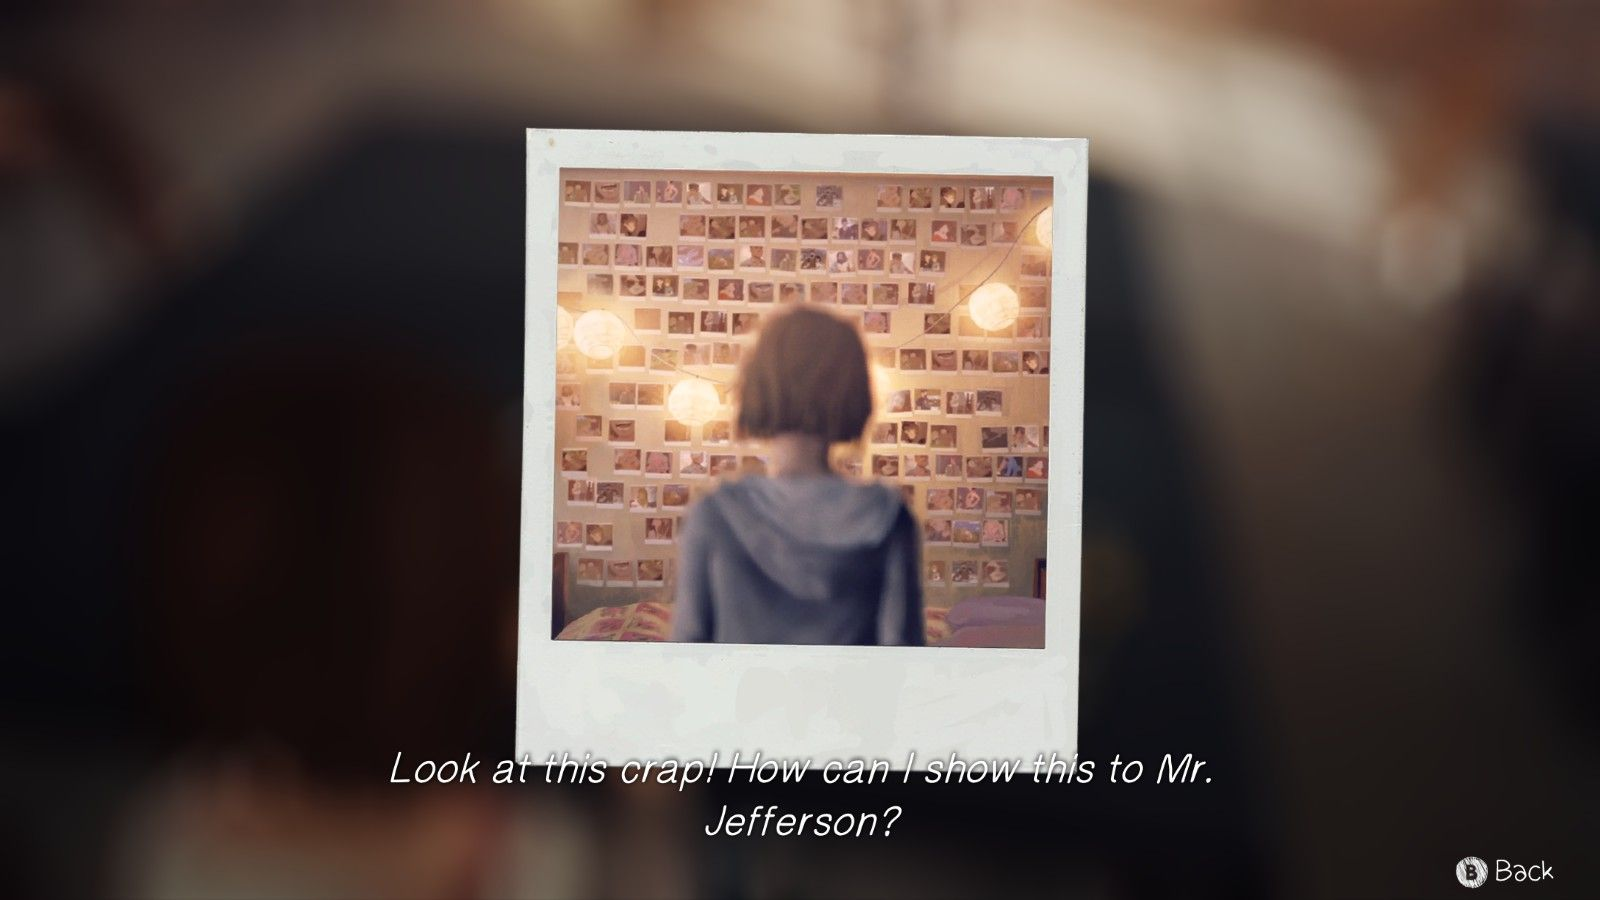 """A screencap showing a selfie of Max, with the text """"Look at this crap! How can I show this to Mr. Jefferson?"""""""